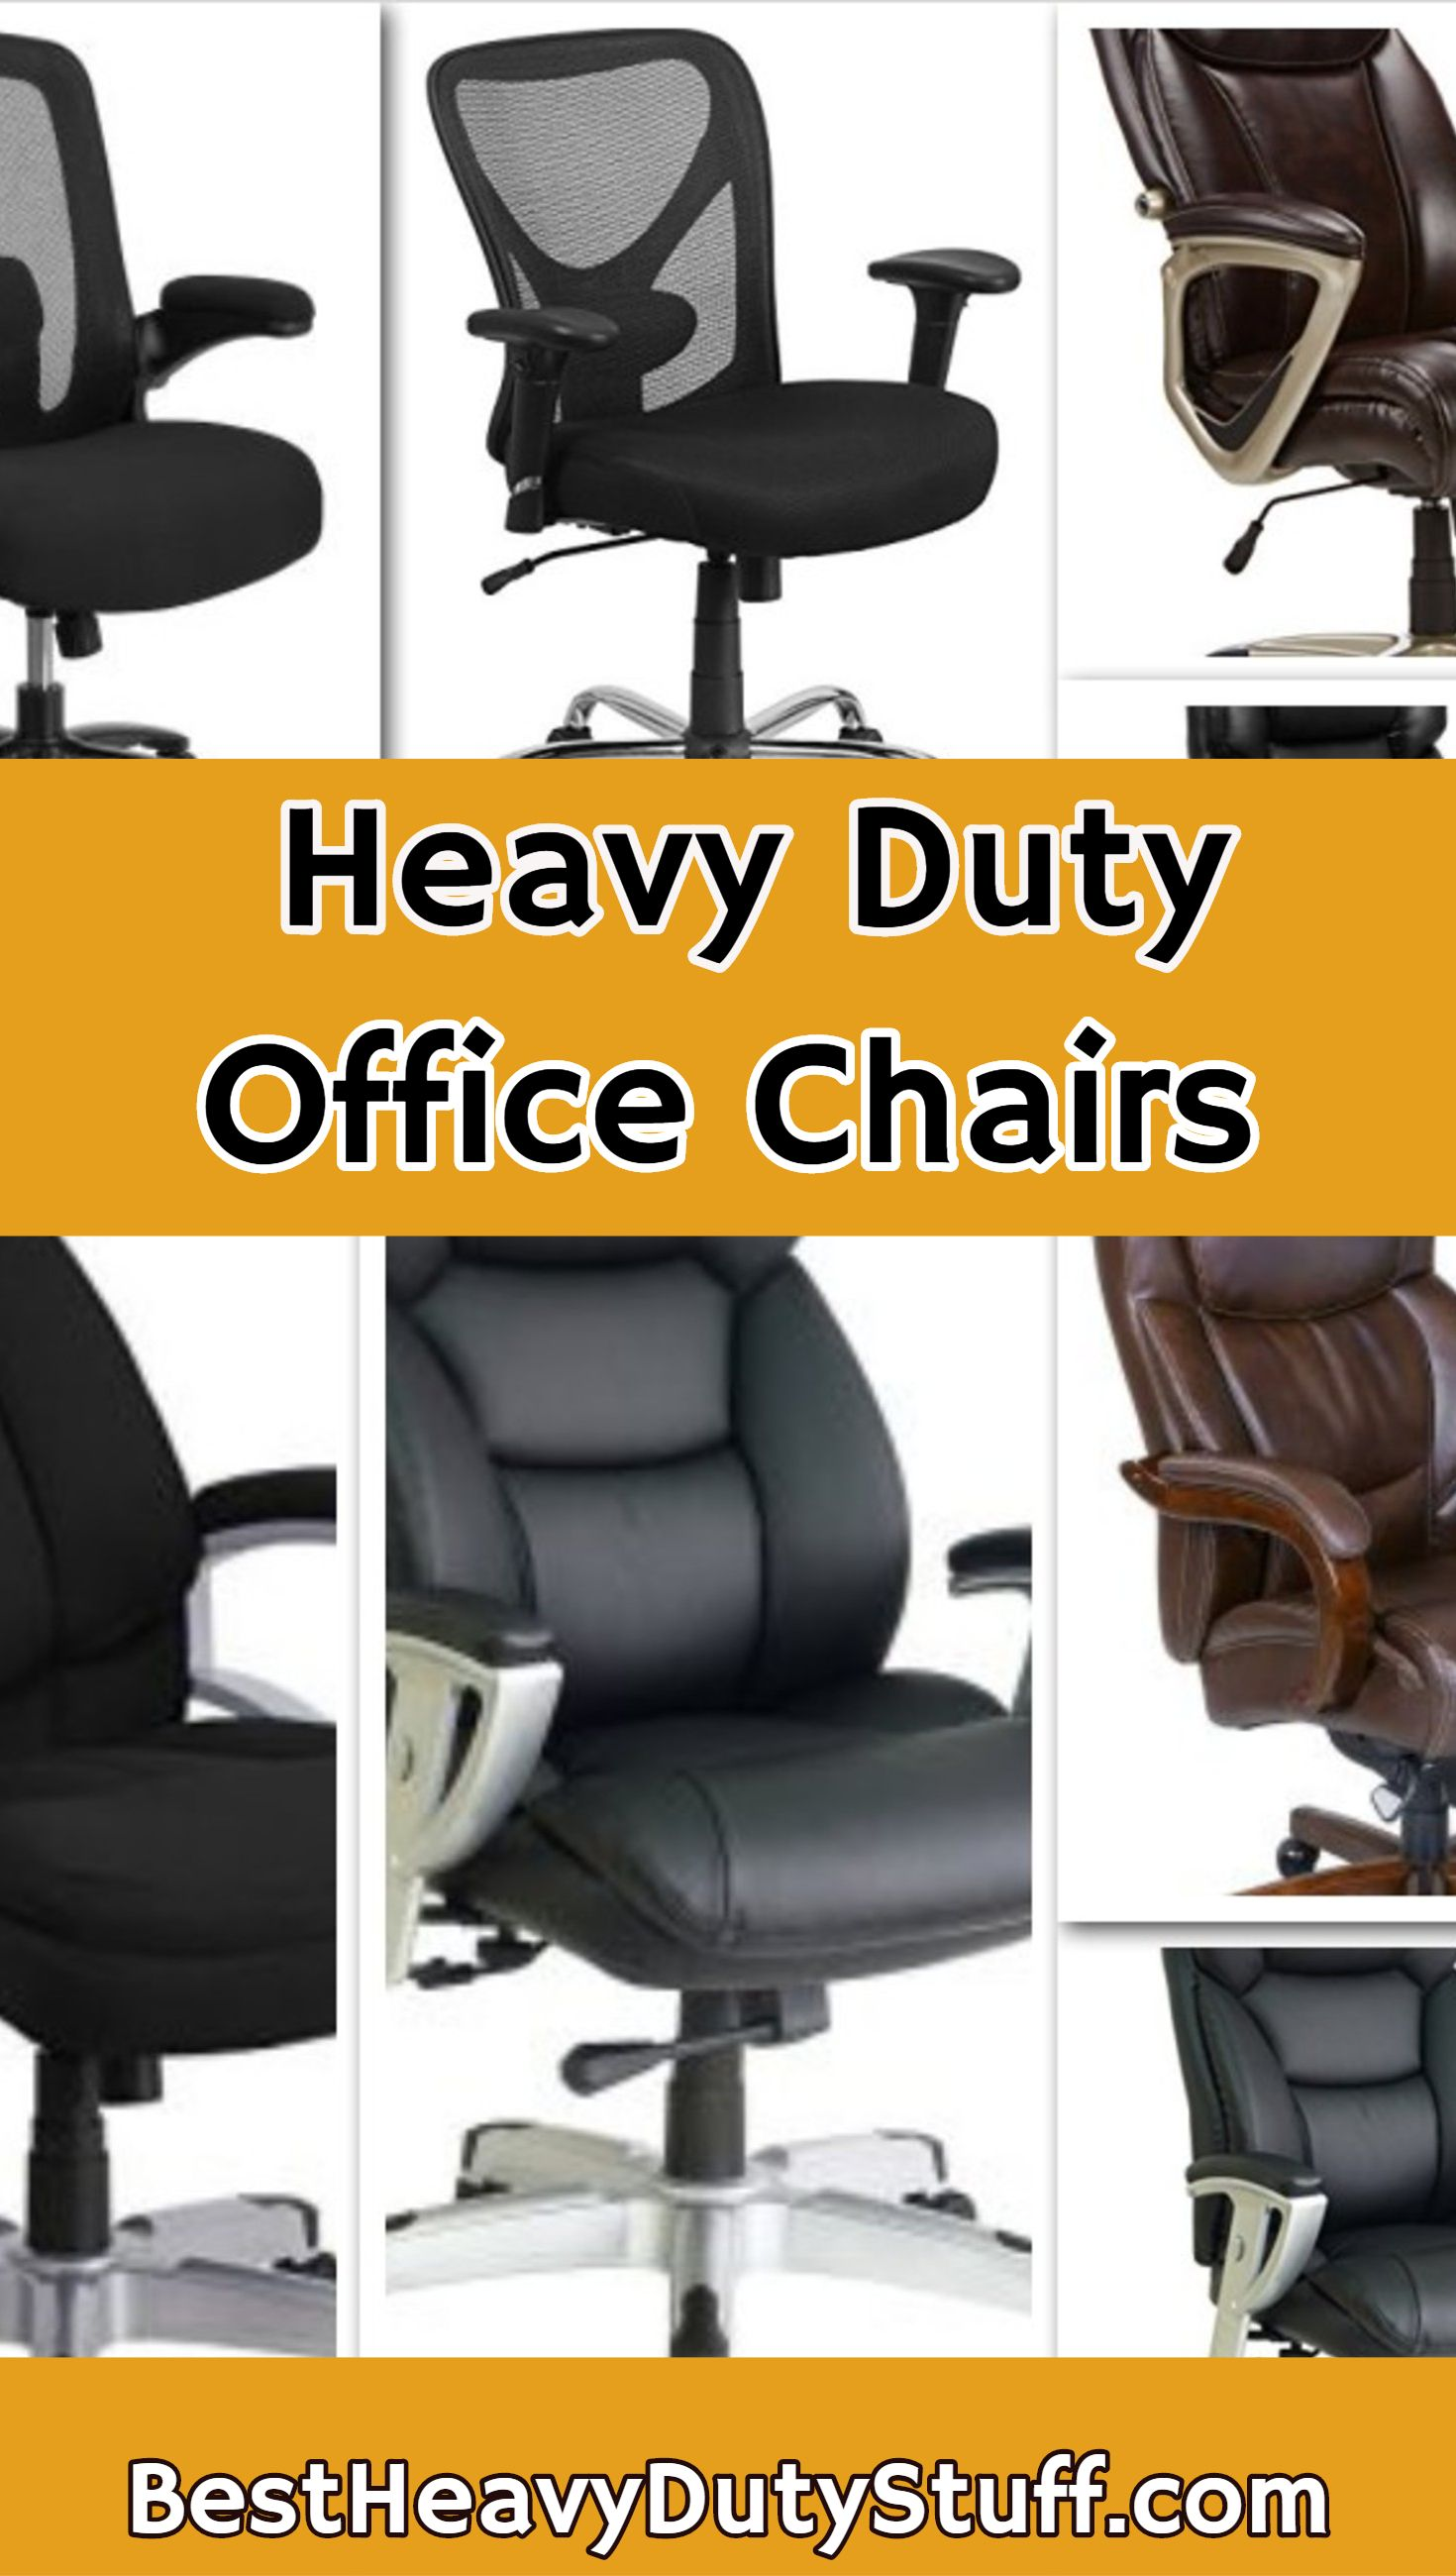 Strong Extra Wide Office Chairs For Heavy People Comfortable And Durable Lots Of